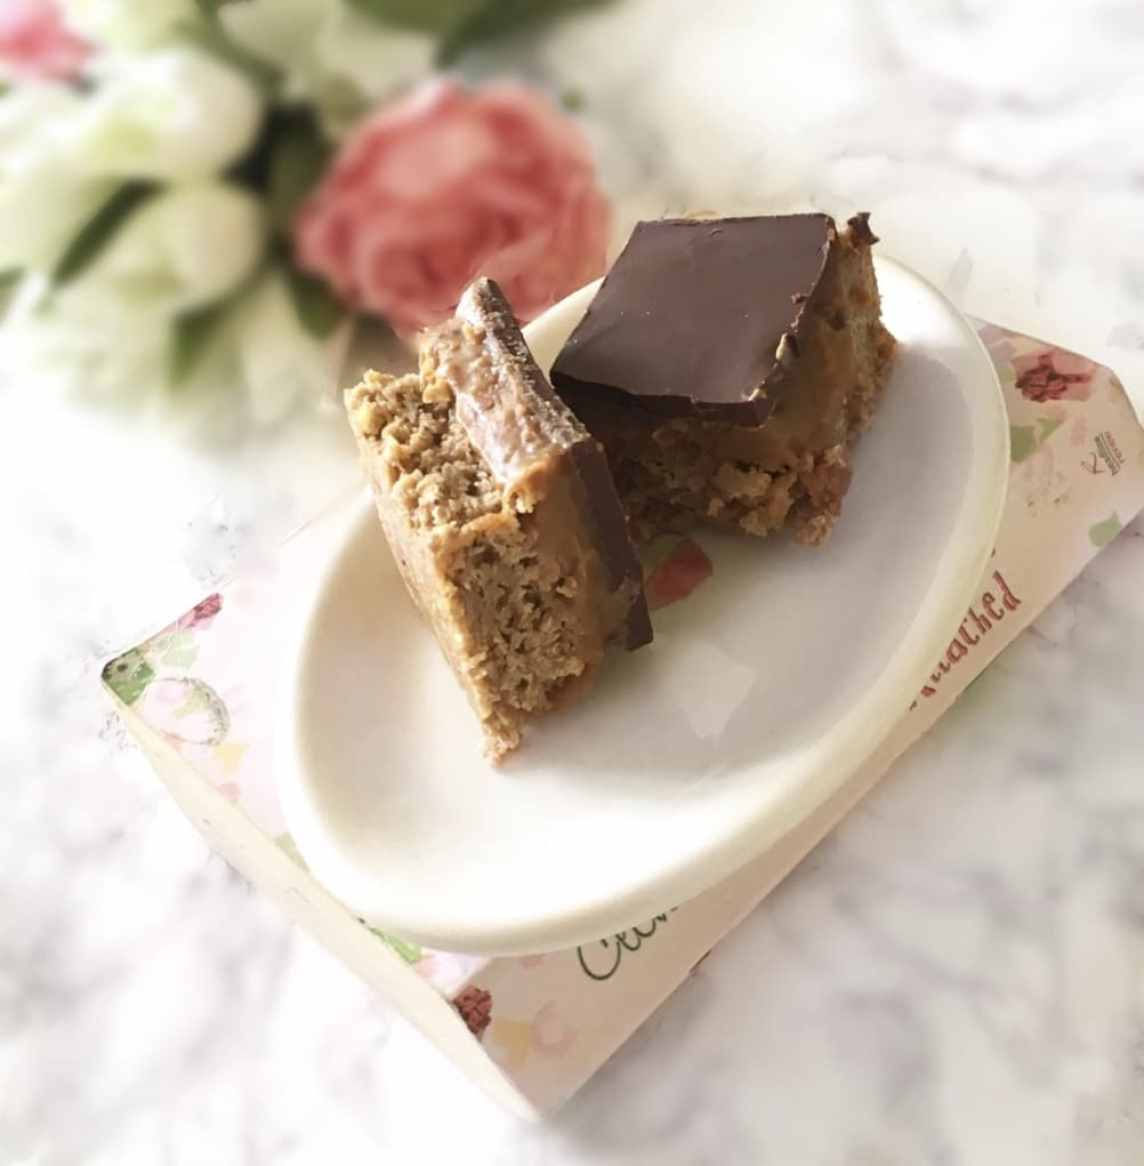 image shows the finished Millionaire Flapjacks on a plate.